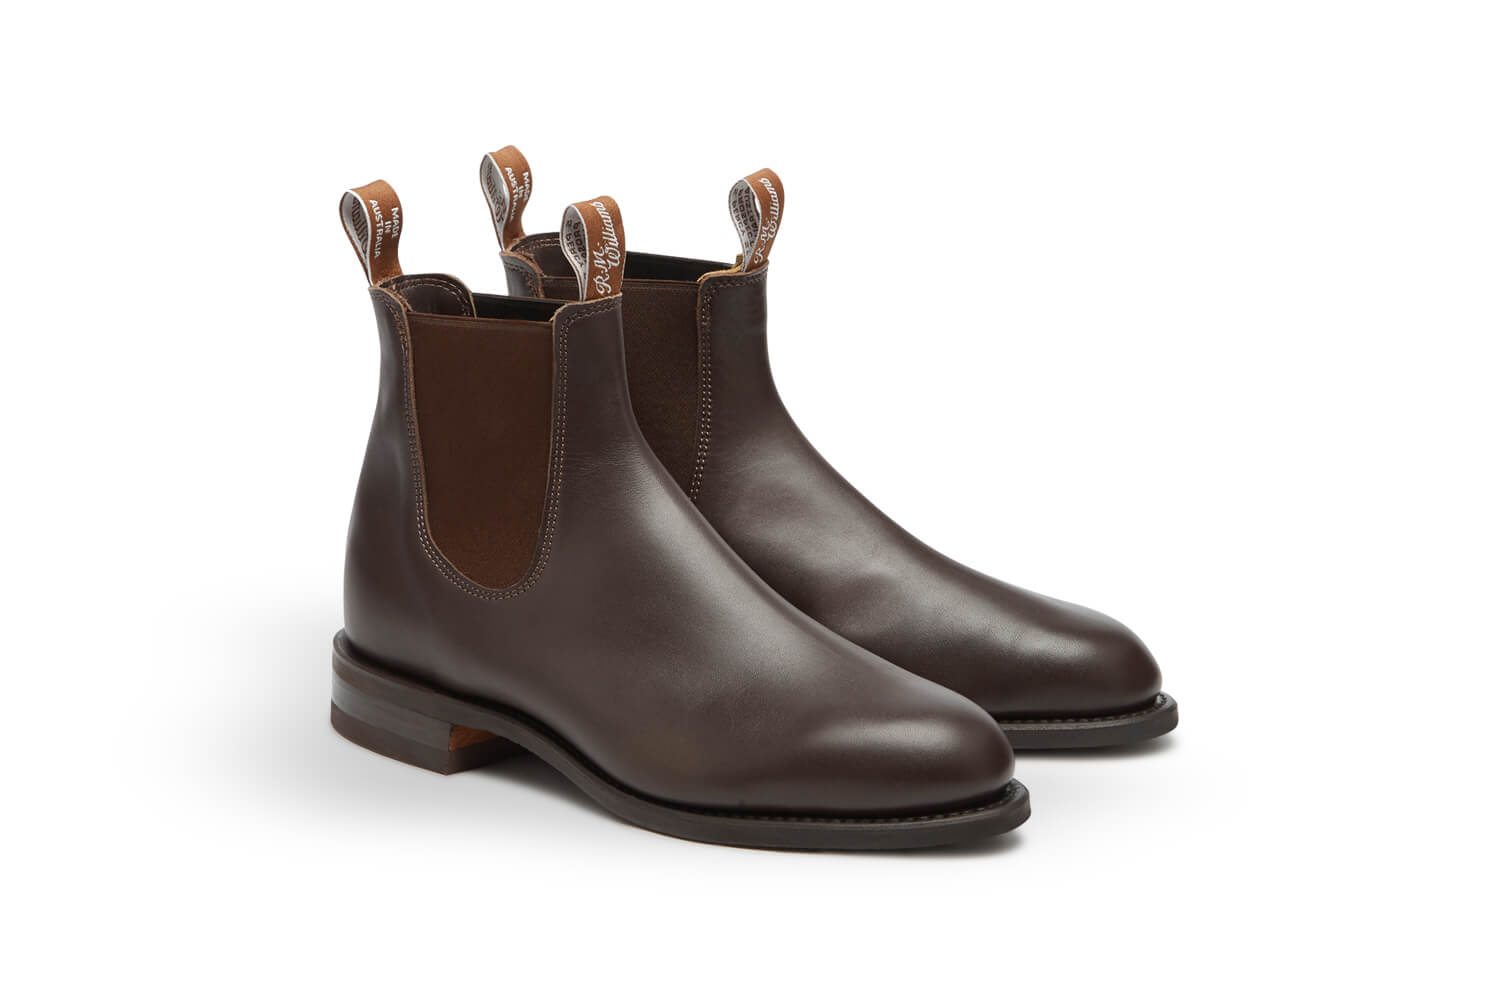 R.M.Williams handcrafted Turnout